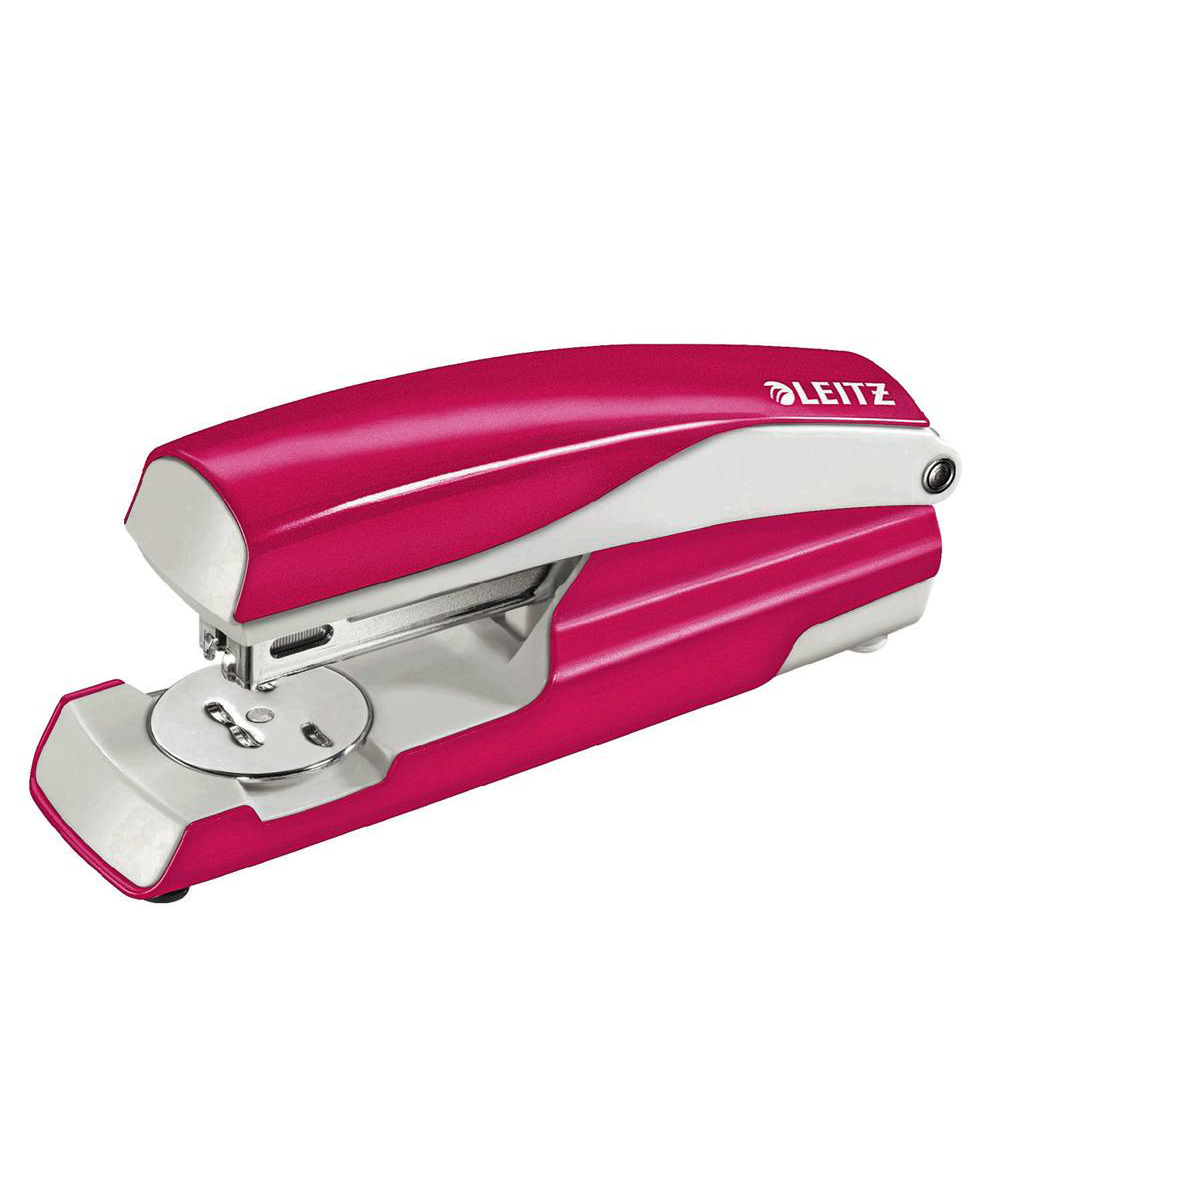 Desktop Staplers Leitz NeXXt WOW Stapler 3mm 30 Sheet Pink Ref 55021023L [REDEMPTION] Apr-Jun20